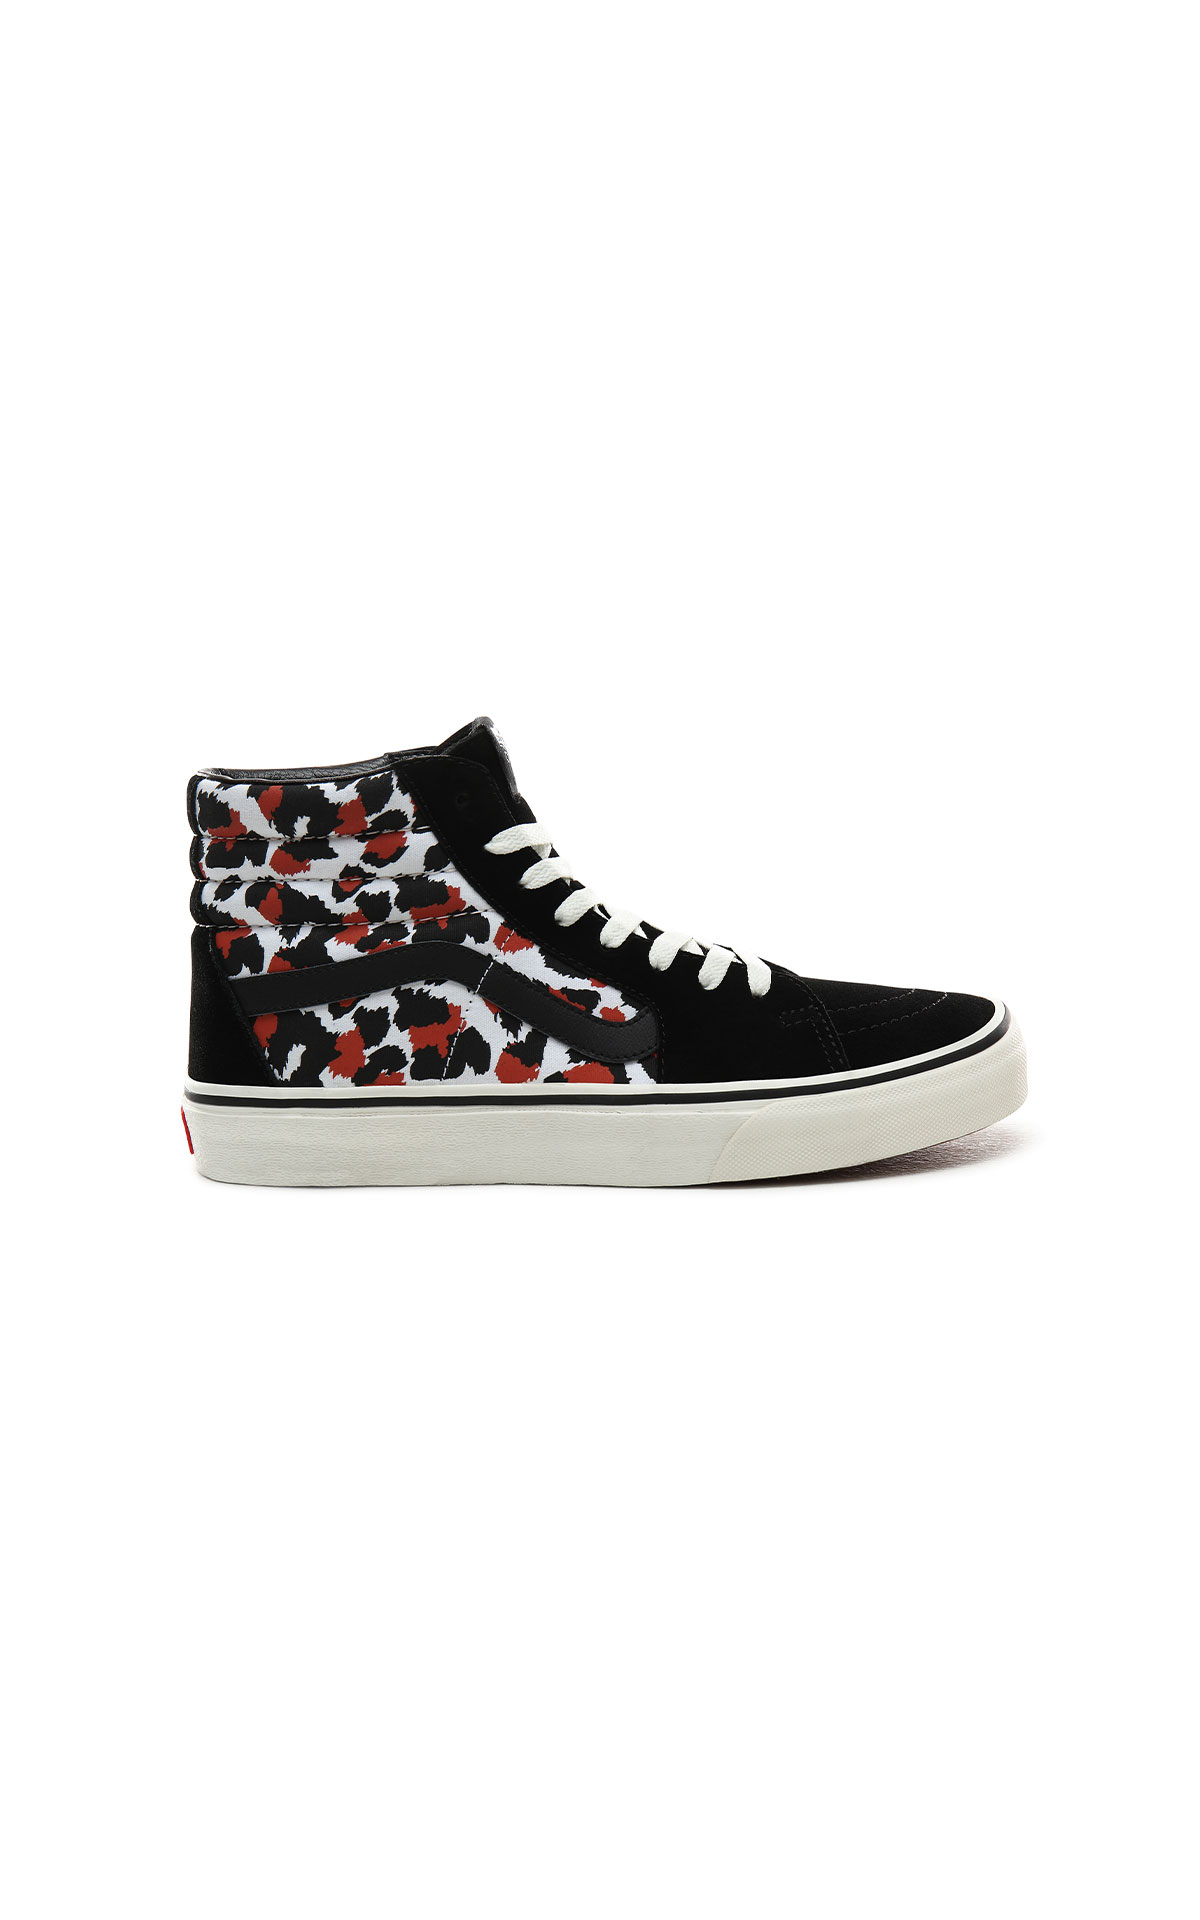 Vans UA sk8-hi leopard black from Bicester Village